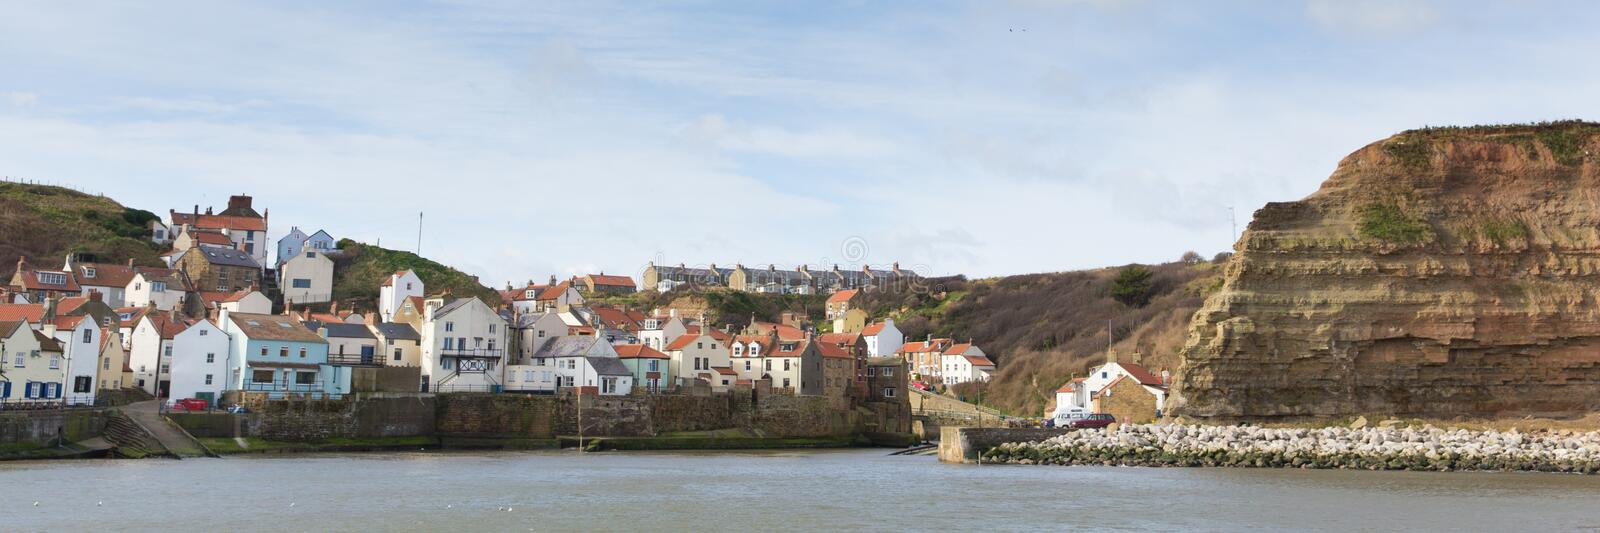 Staithes Yorkshire English seaside village and tourist destination panoramic view stock images